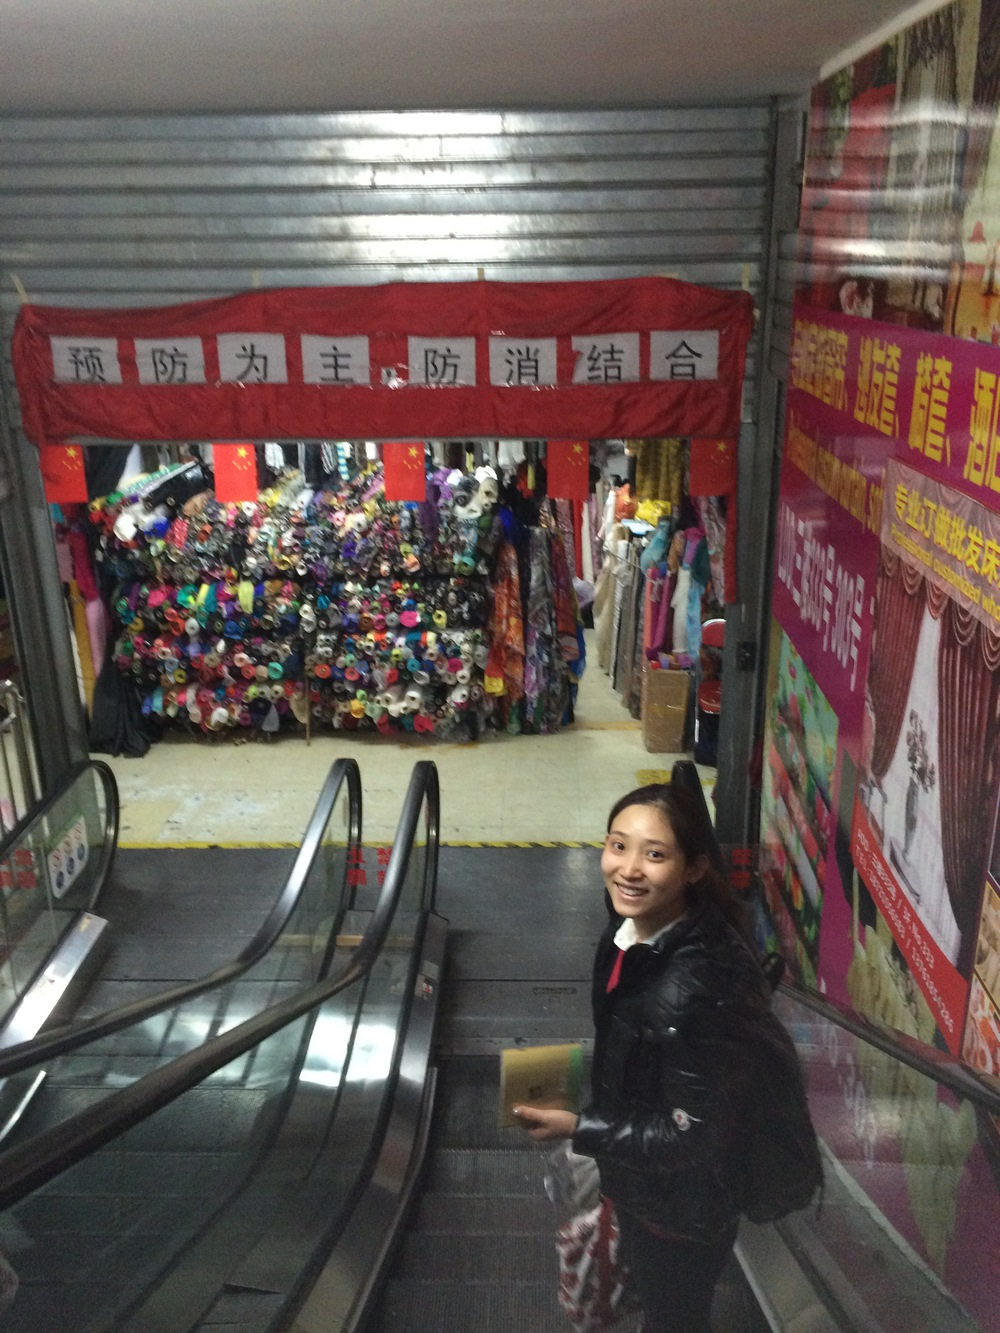 The sweet, patient Zongzong leading the search for fabrics.